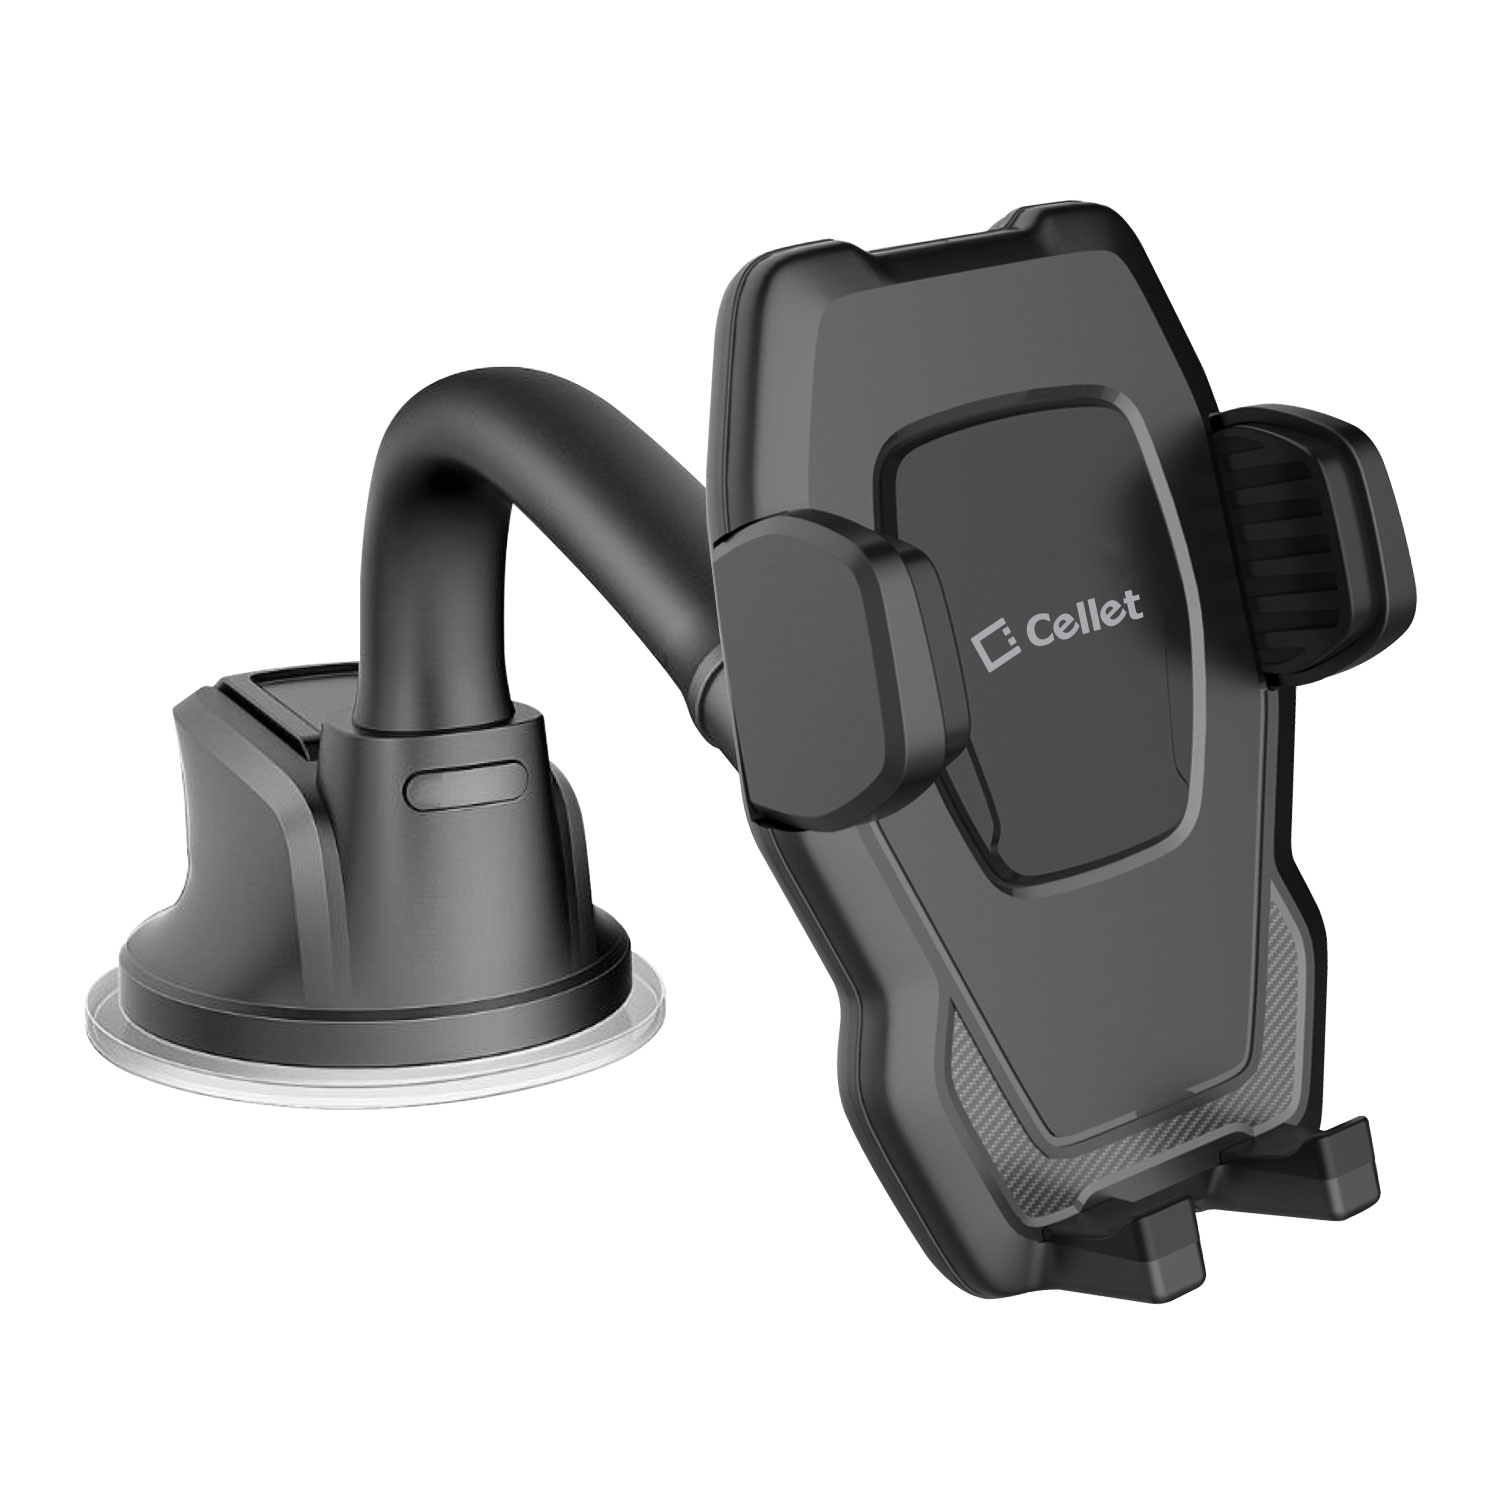 Huawei Honor 6 Plus Windshield Phone Holder Goose Neck Black